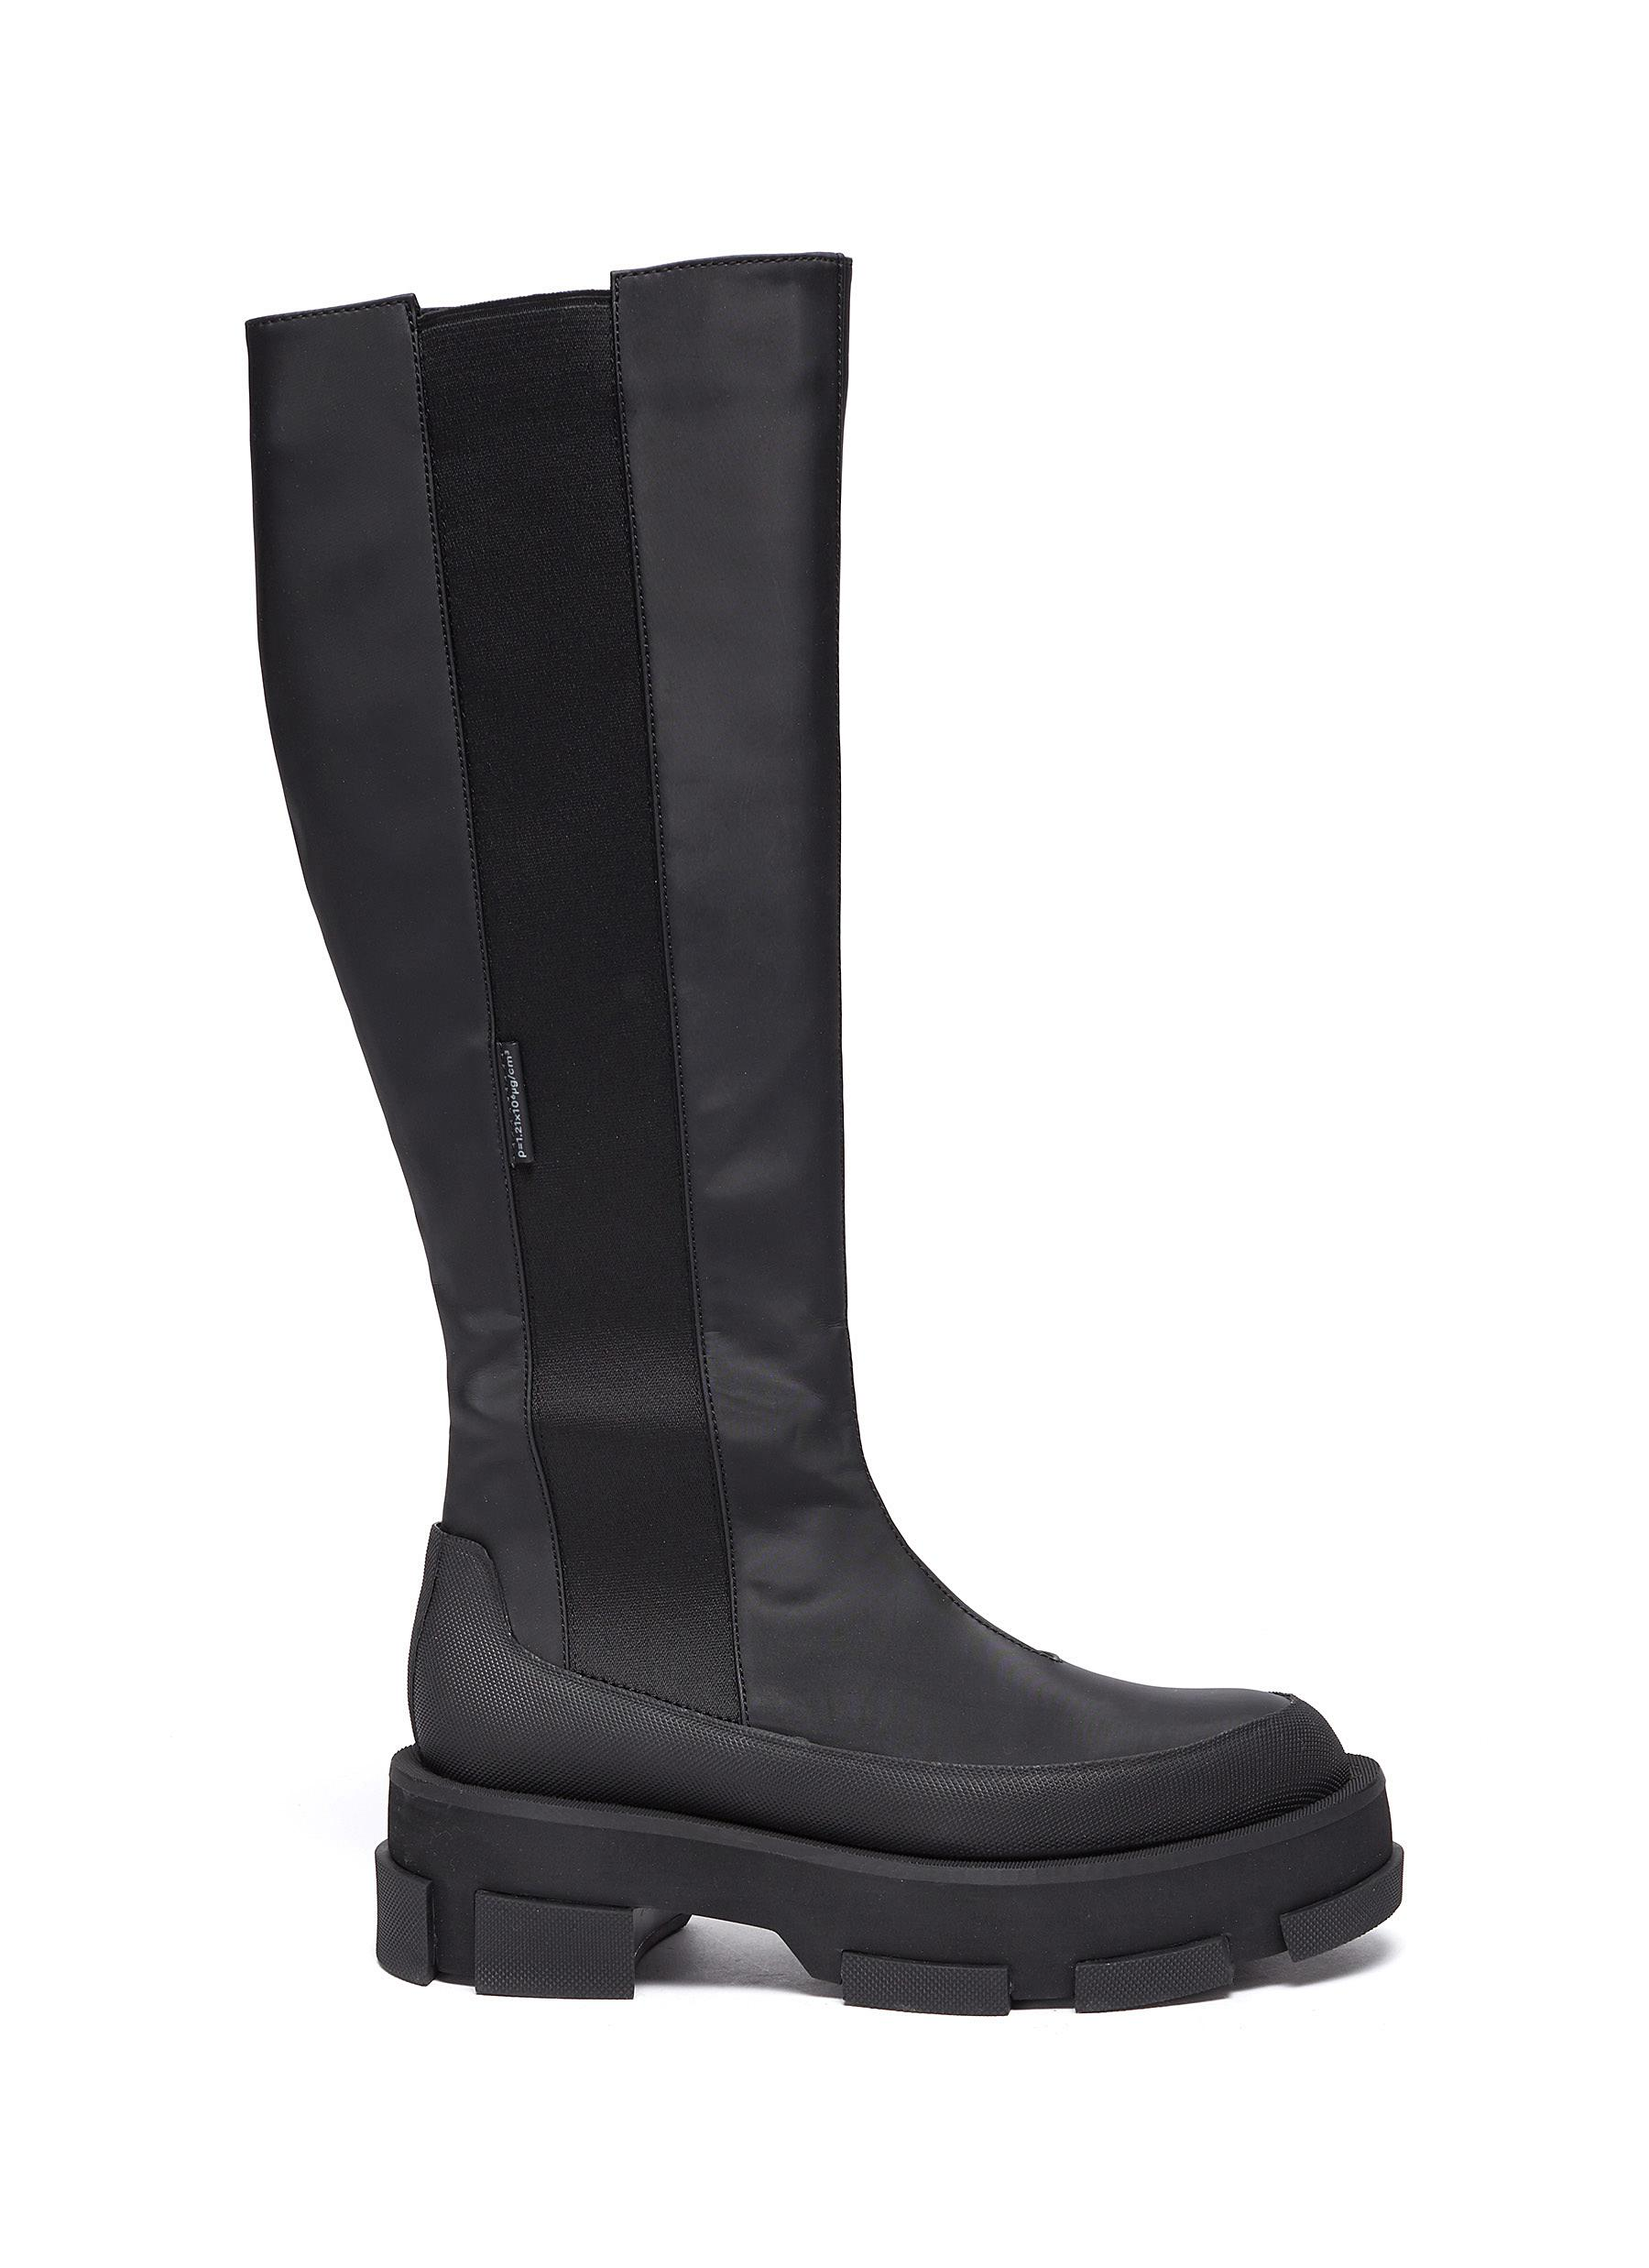 'Gao' knee high platform leather boots